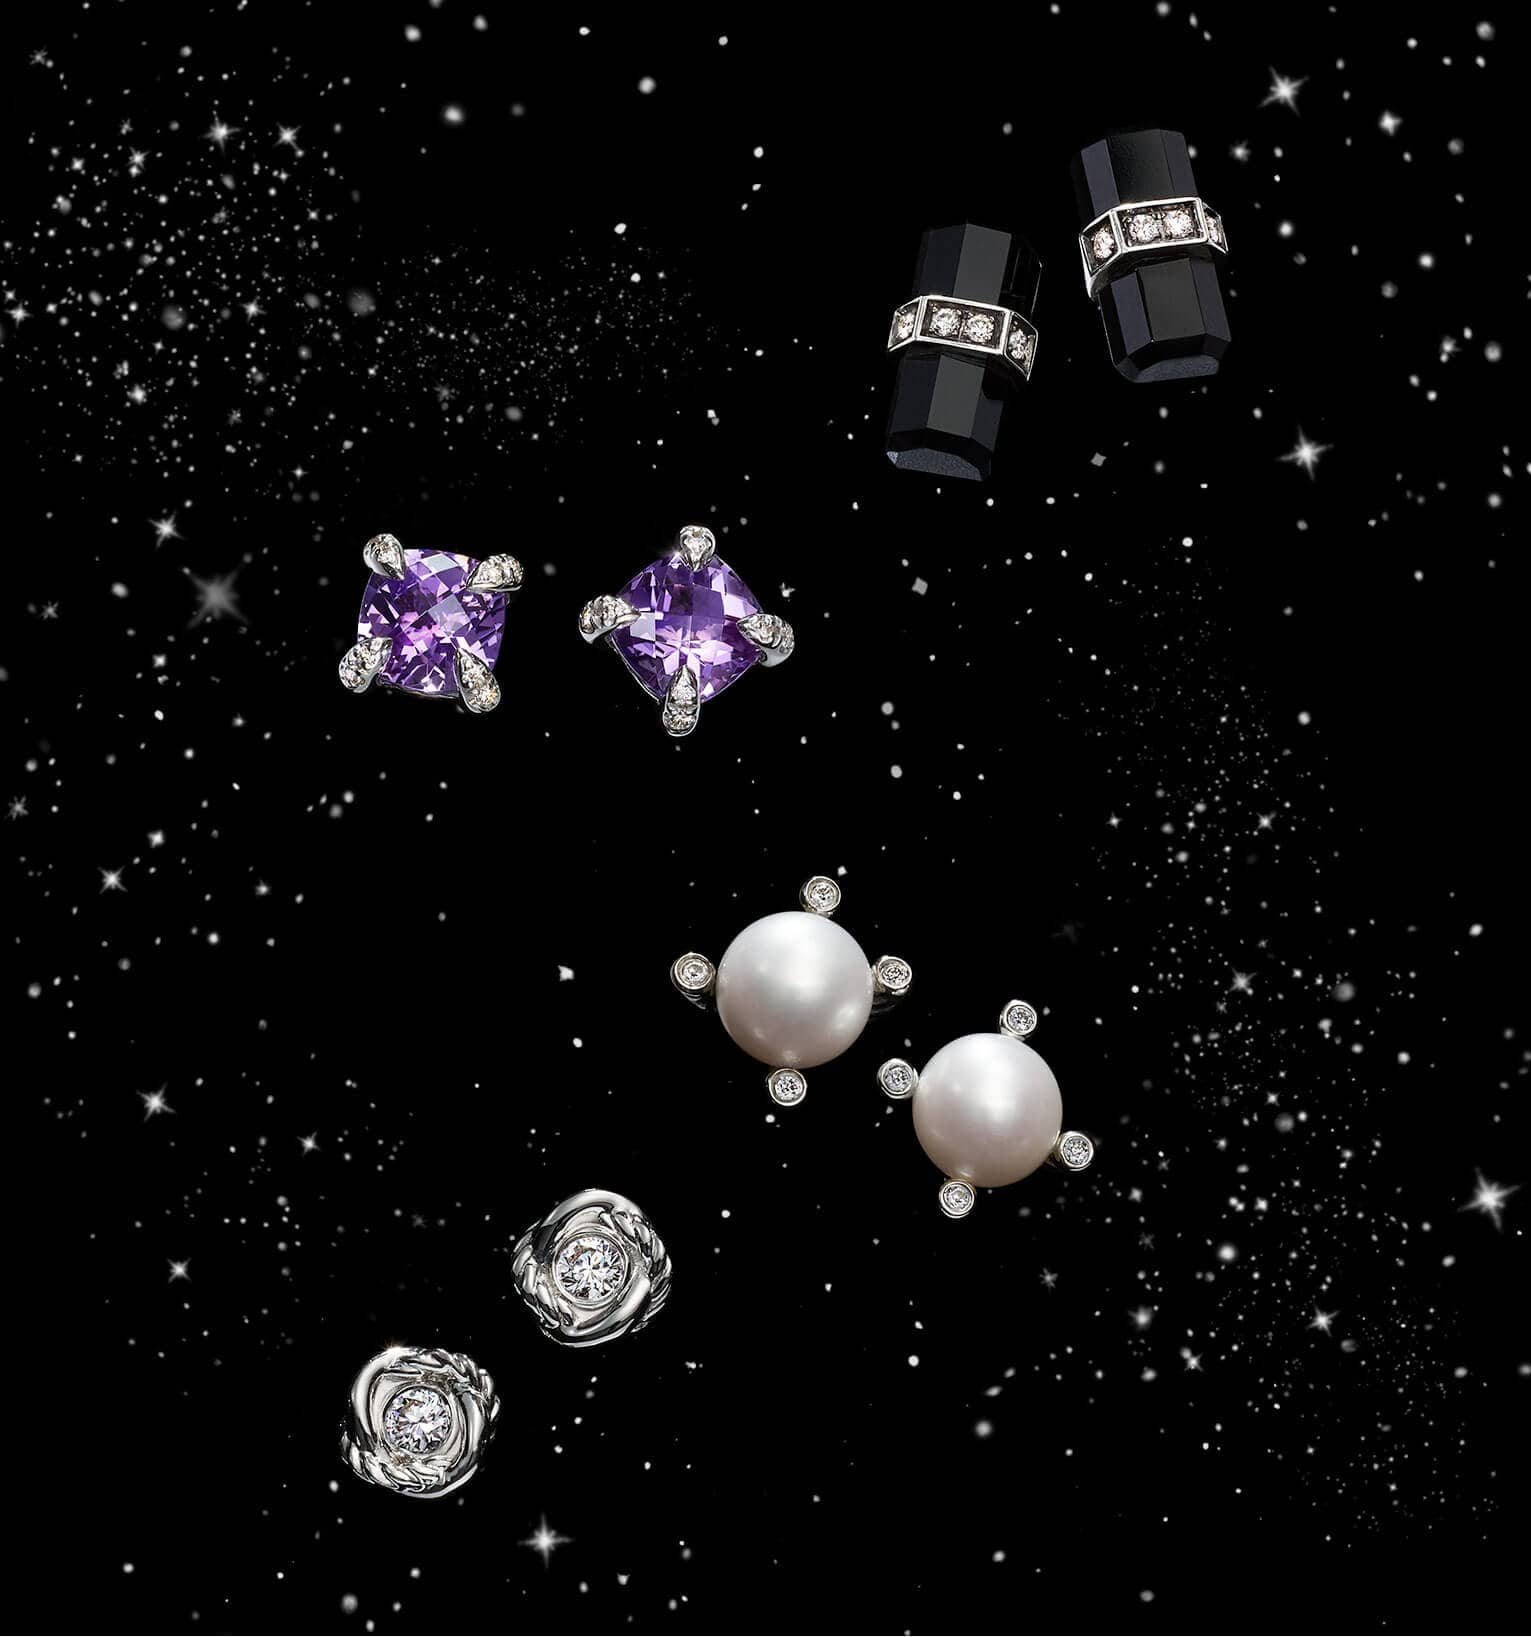 A color photo shows four pairs of David Yurman women's stud earrings from the Châtelaine, Lexington, Cable Collectibles and Infinity collections floating in a starry night sky. The earrings are crafted from sterling silver with pavé diamonds, black onyx, amethyst or cultured pearls.